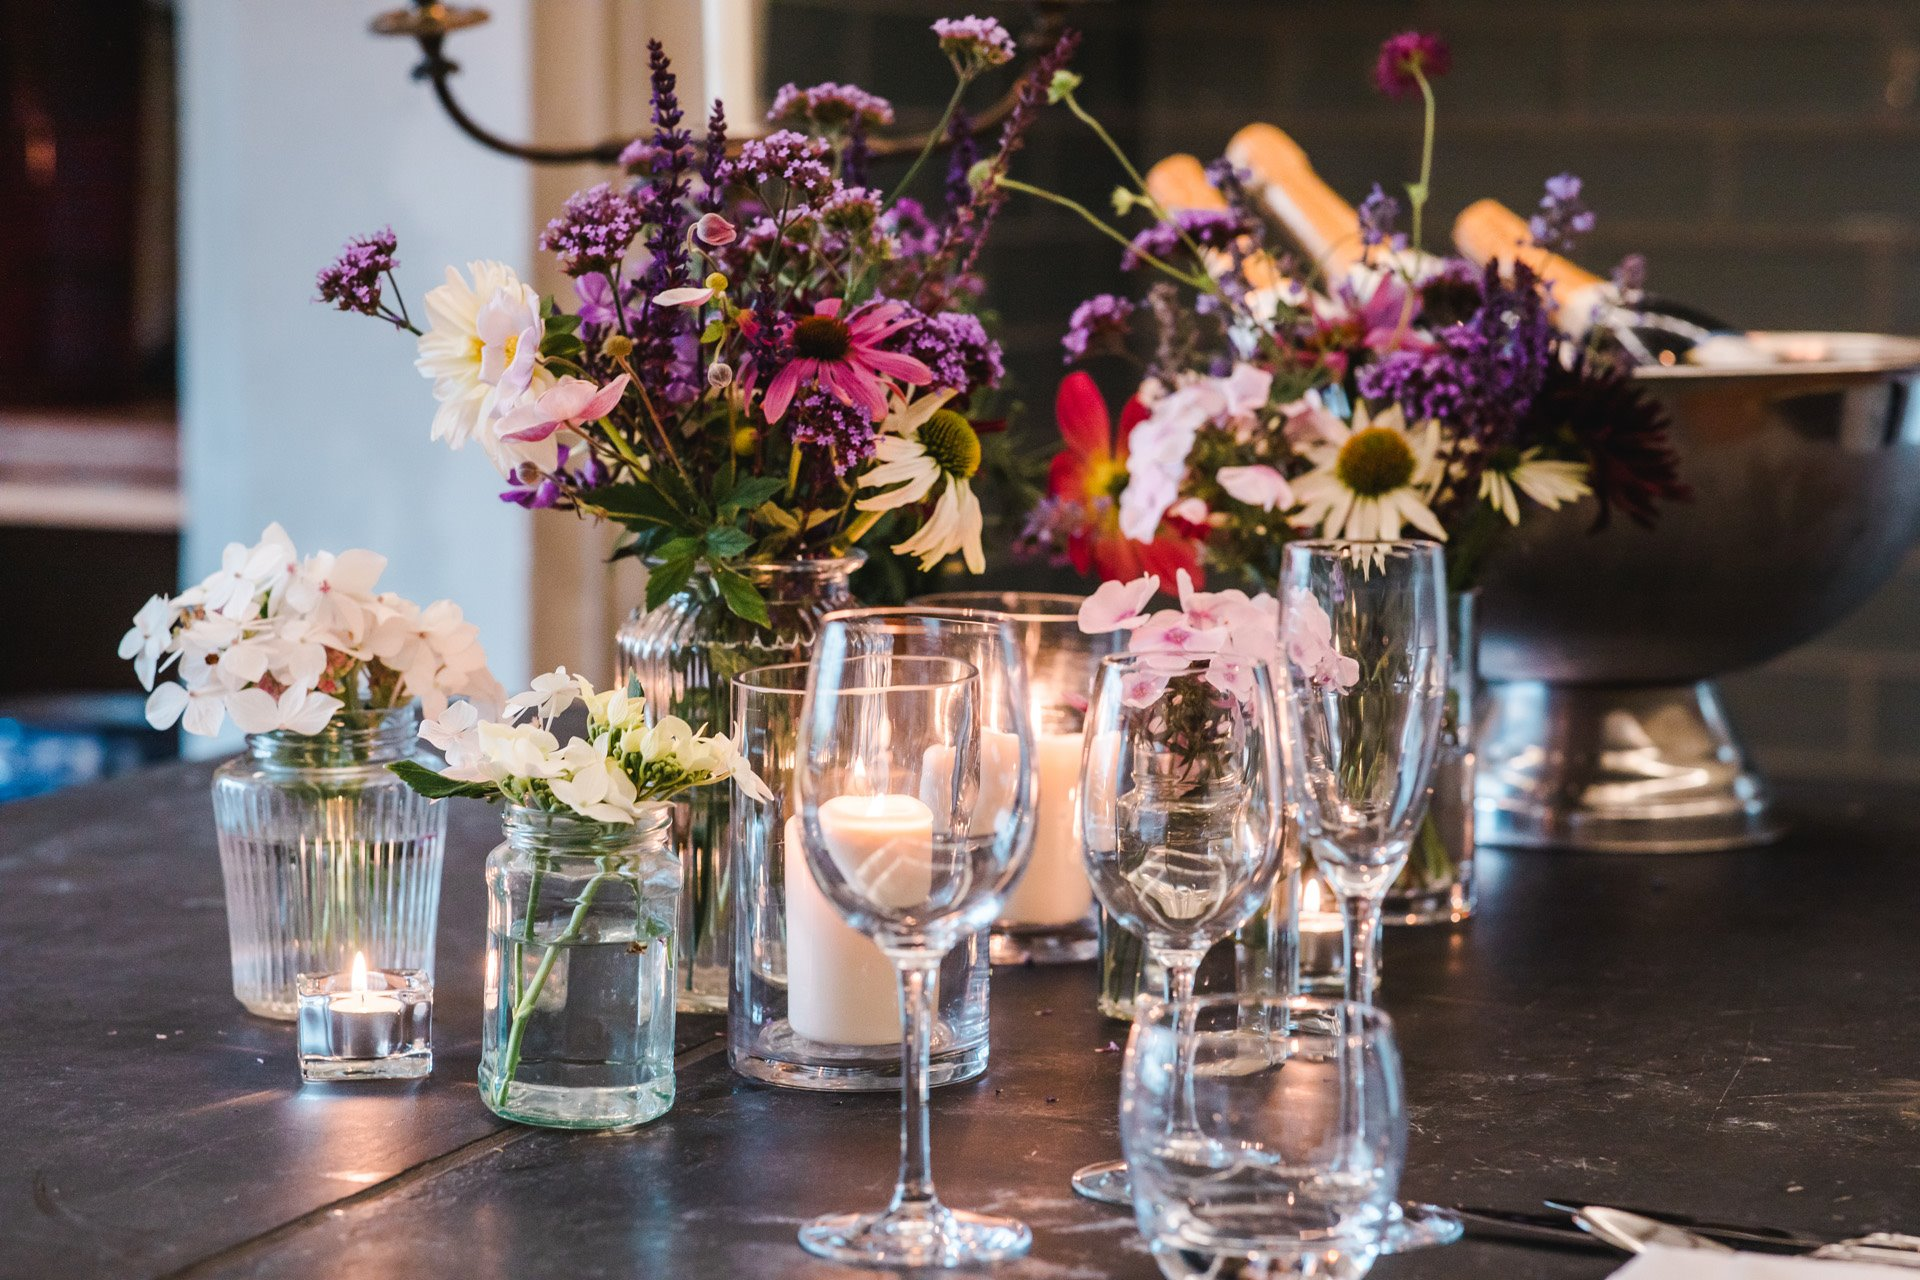 Fresh flowers and candles await you when you have a wedding tasting at elmore court in their newly opened victorian kitchens